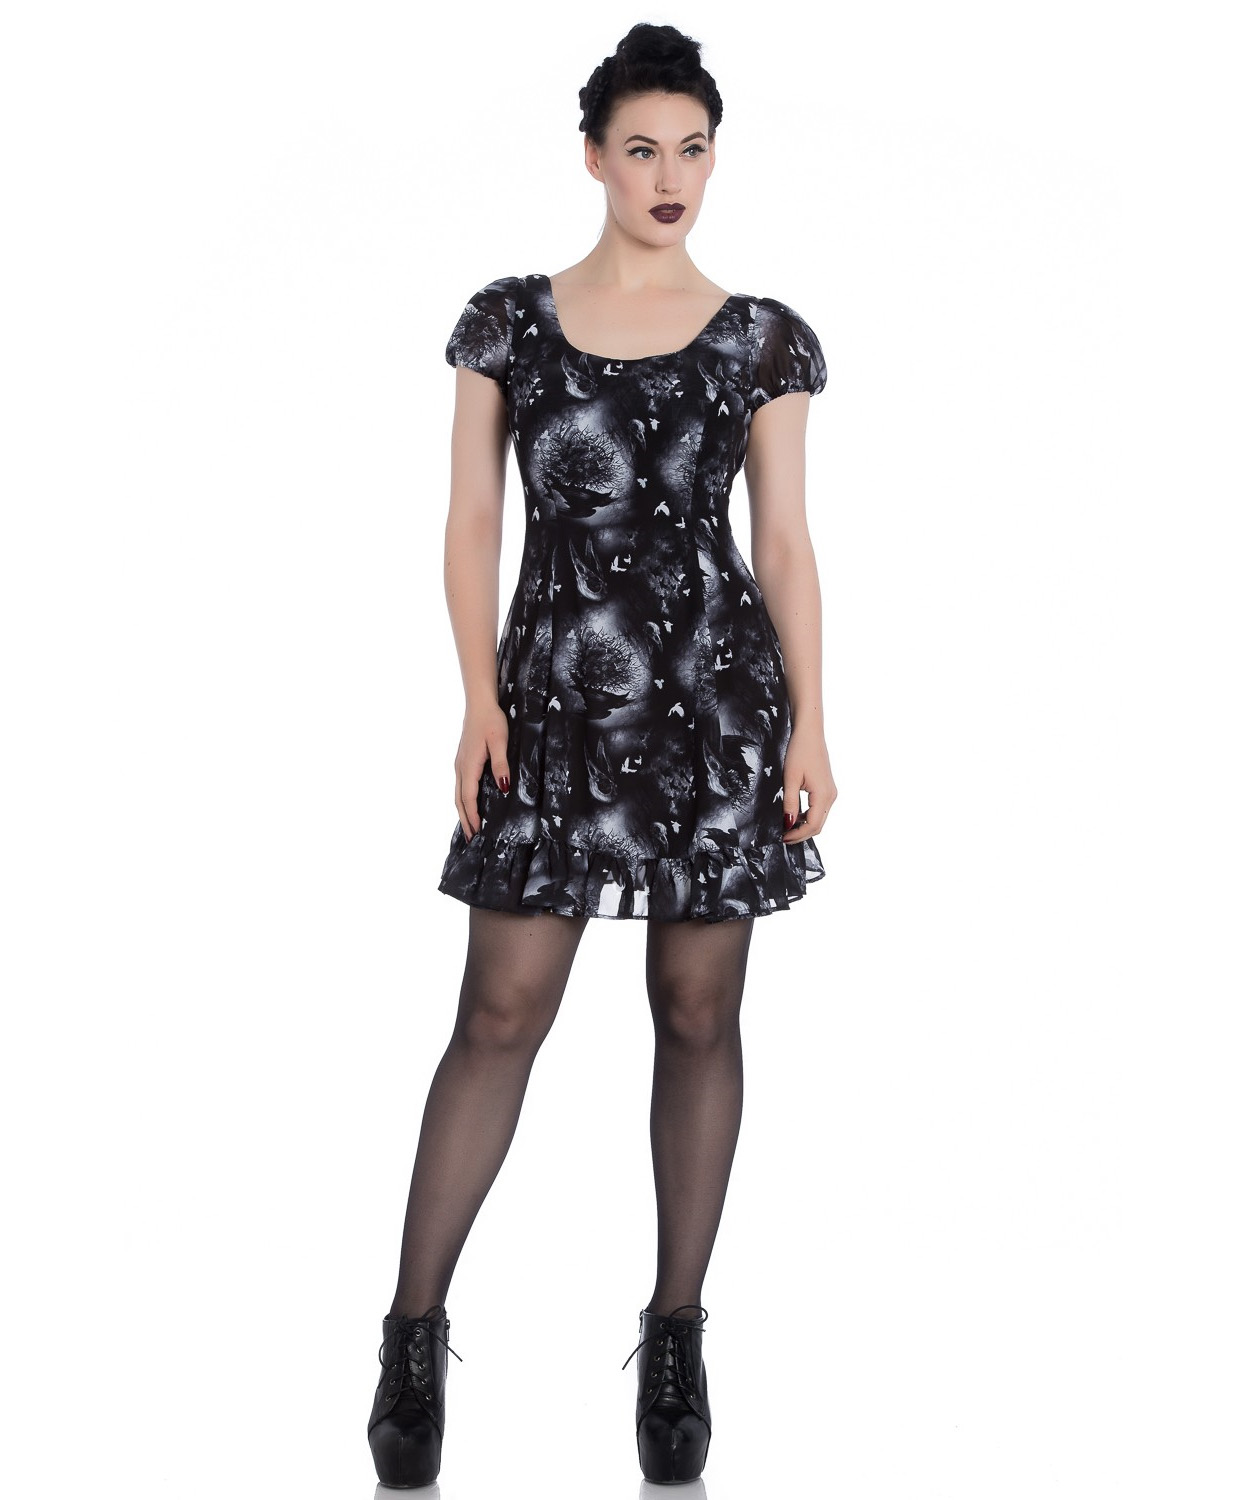 Hell-Bunny-Alchemy-Gothic-Black-Skater-Mini-Dress-ASH-Crows-Skulls-All-Sizes thumbnail 27